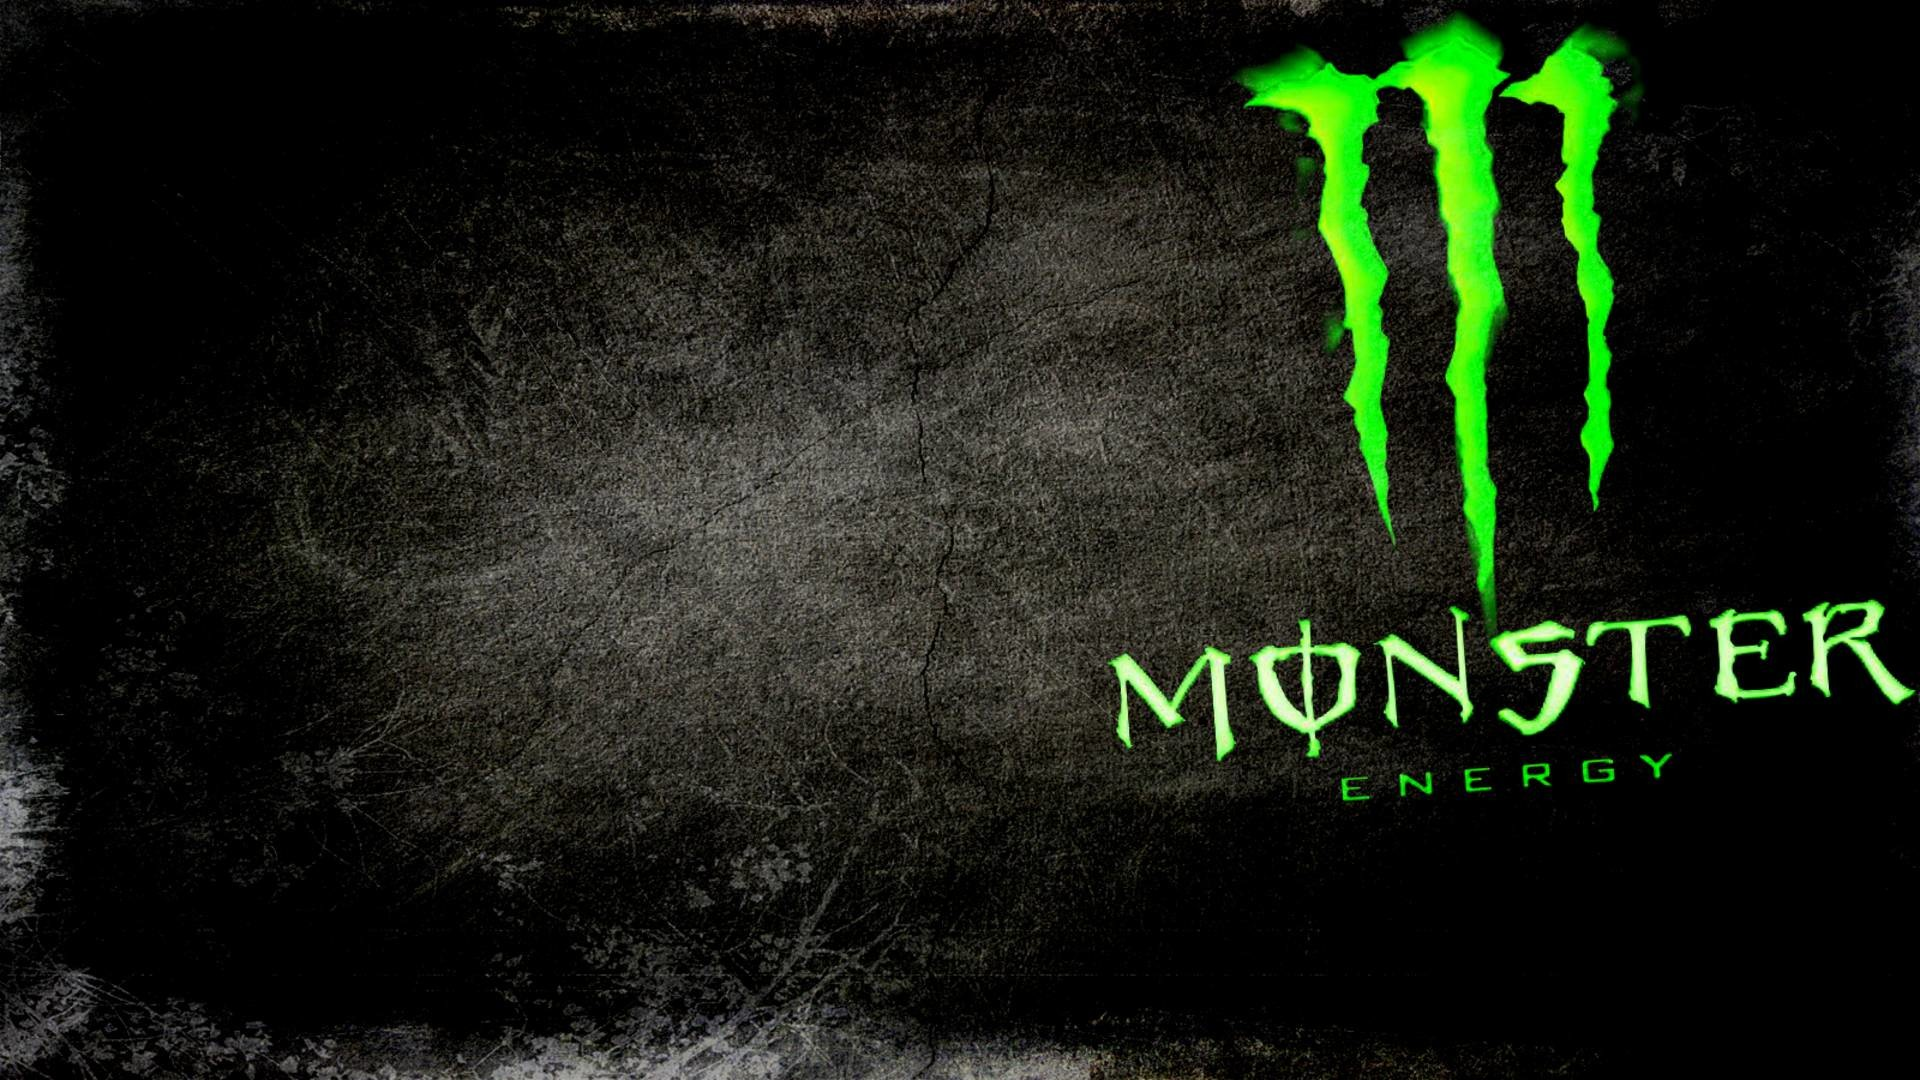 monster energy logo background 183��